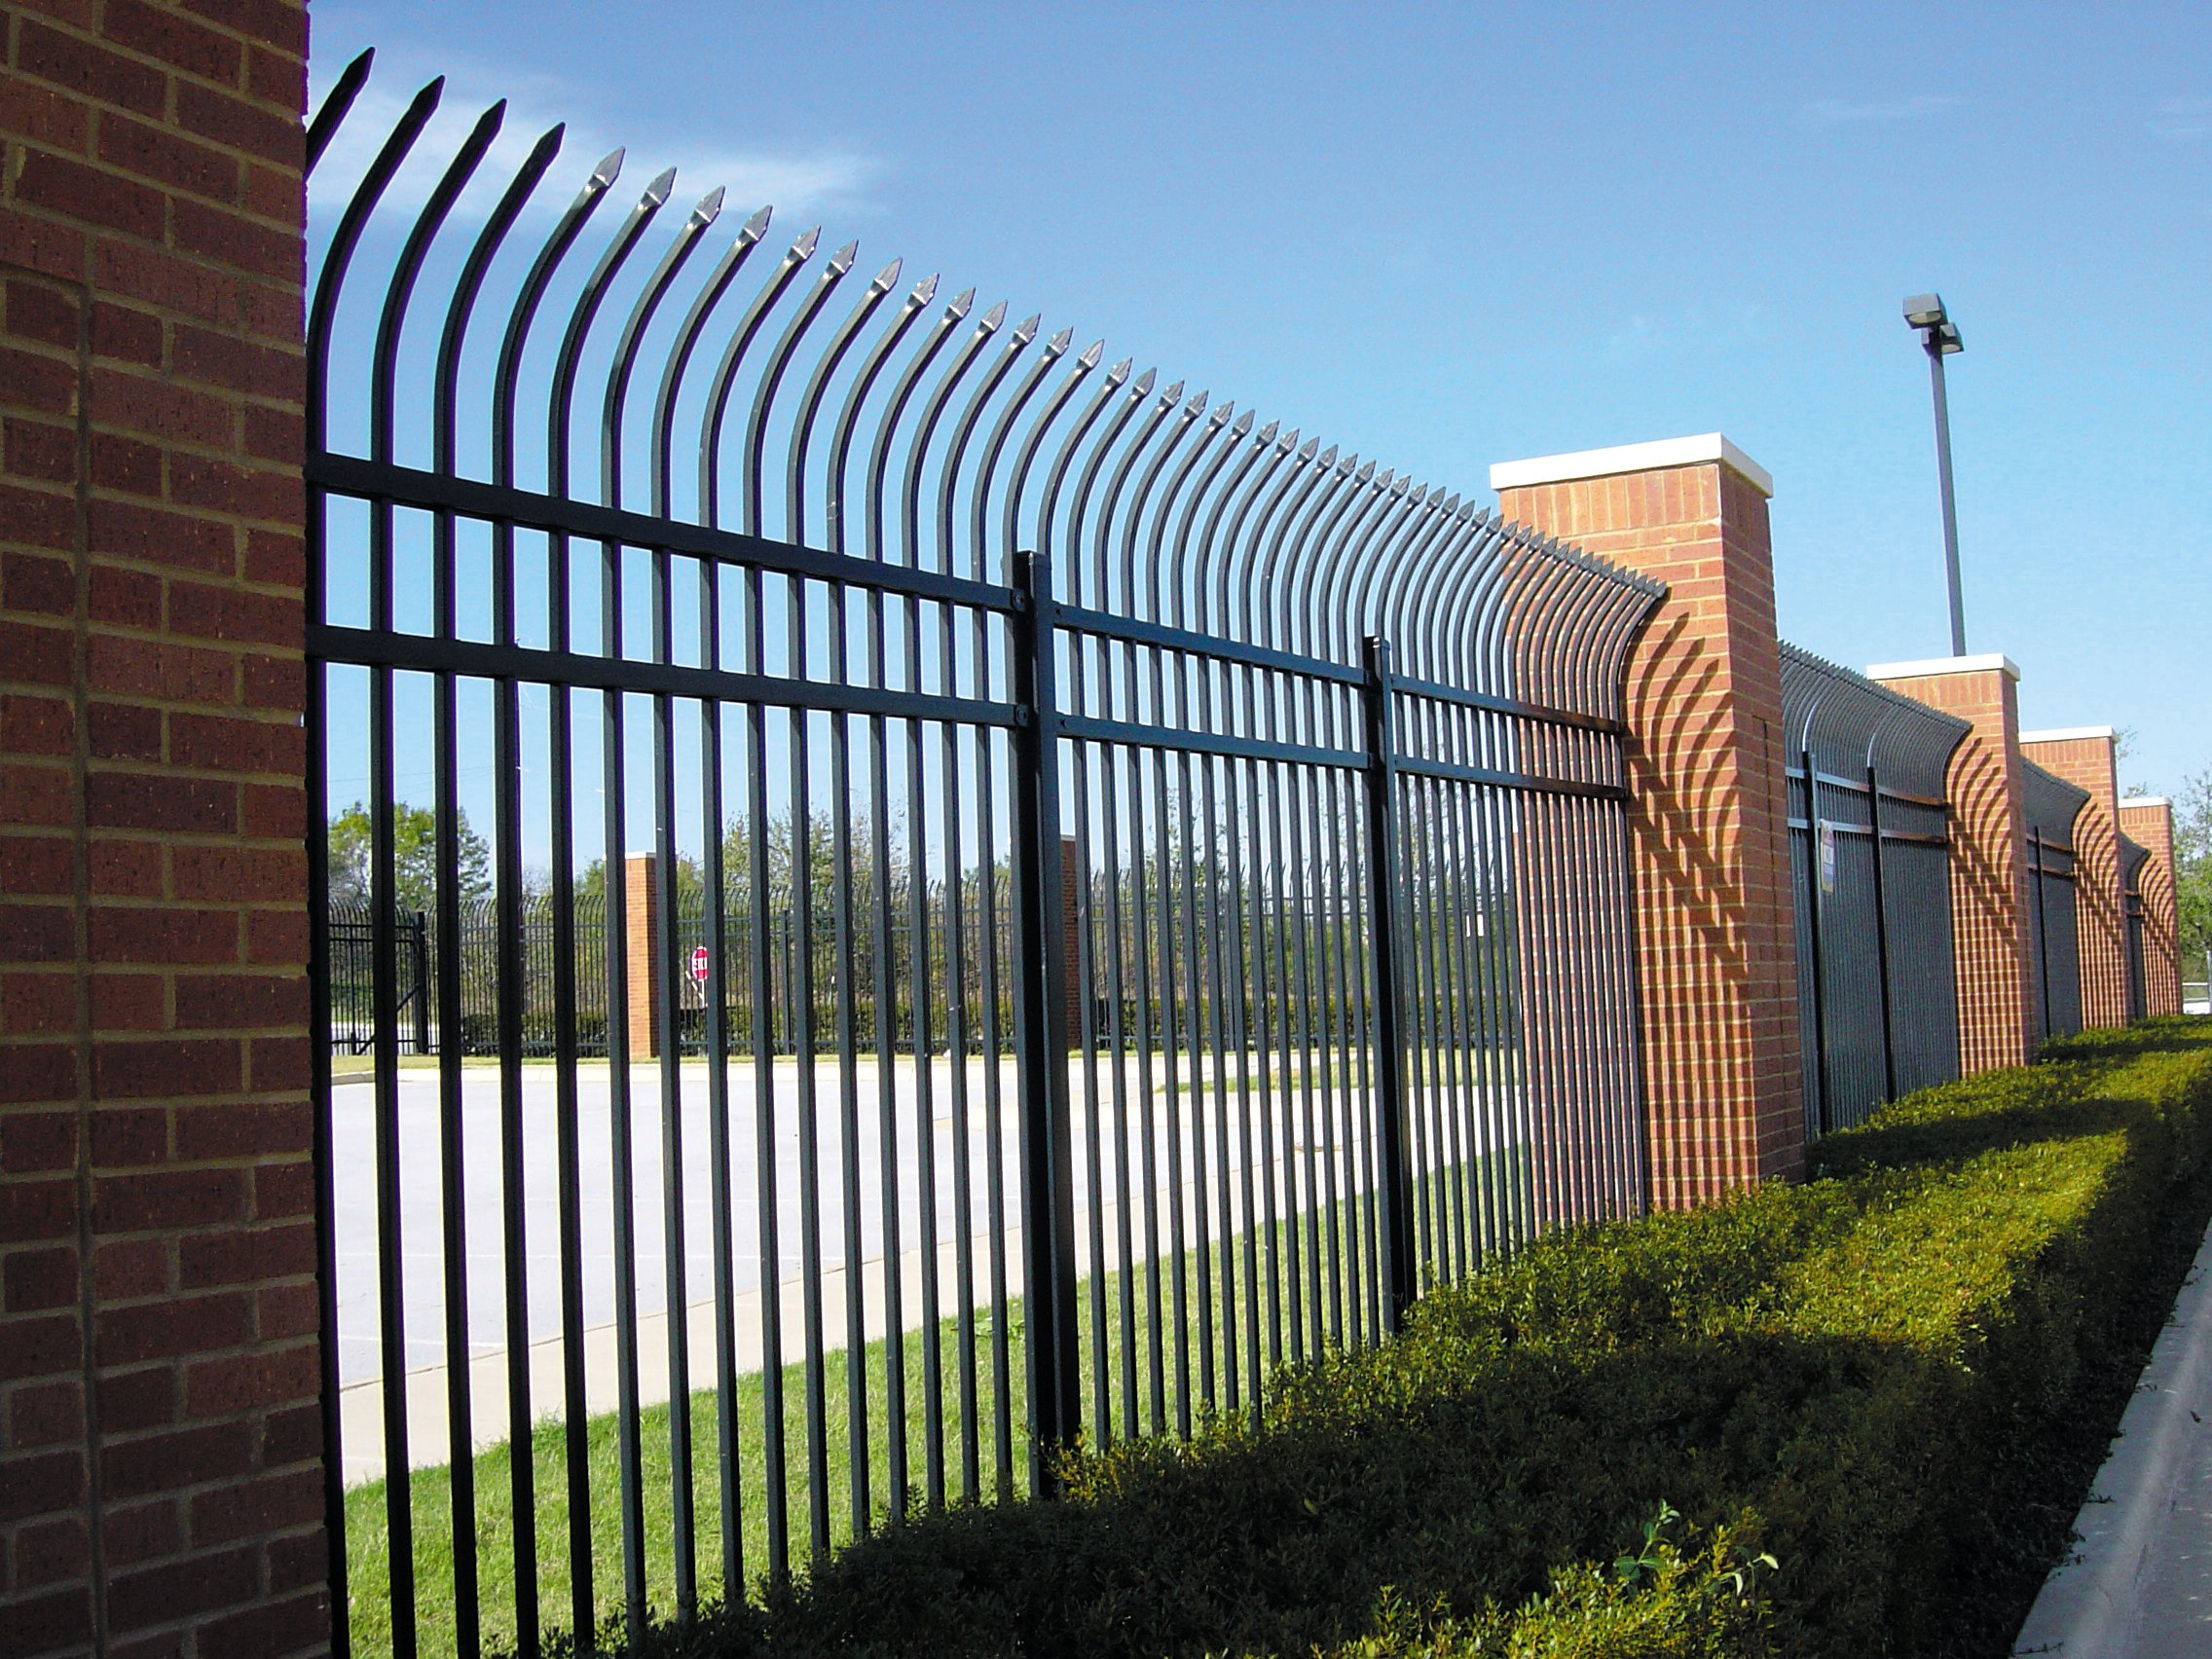 Commercial Wrought Iron Fencing Houston Fence Co